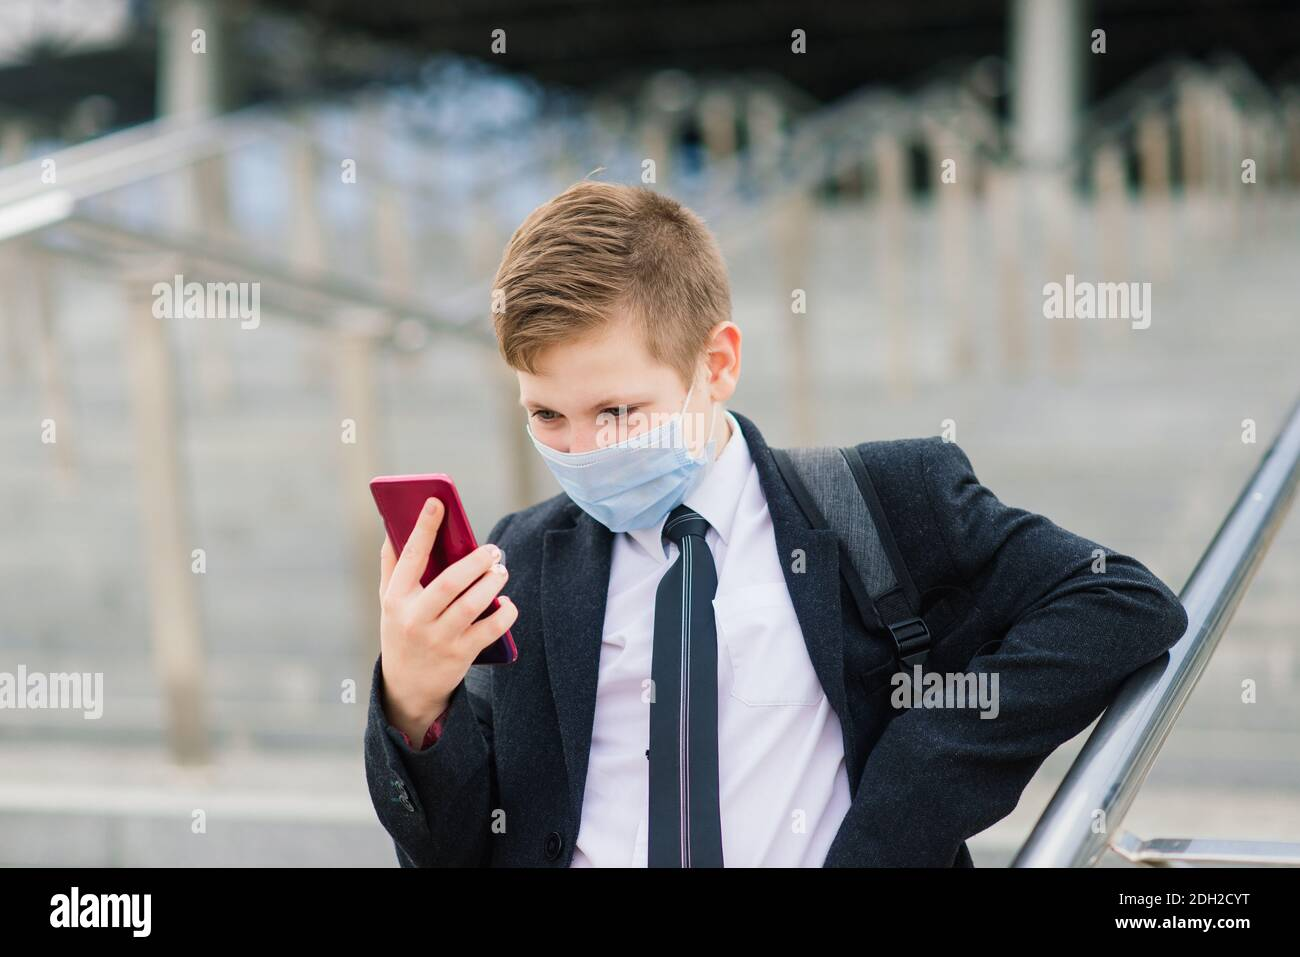 Schoolboy walks out of school wearing protective mask in the city Stock Photo